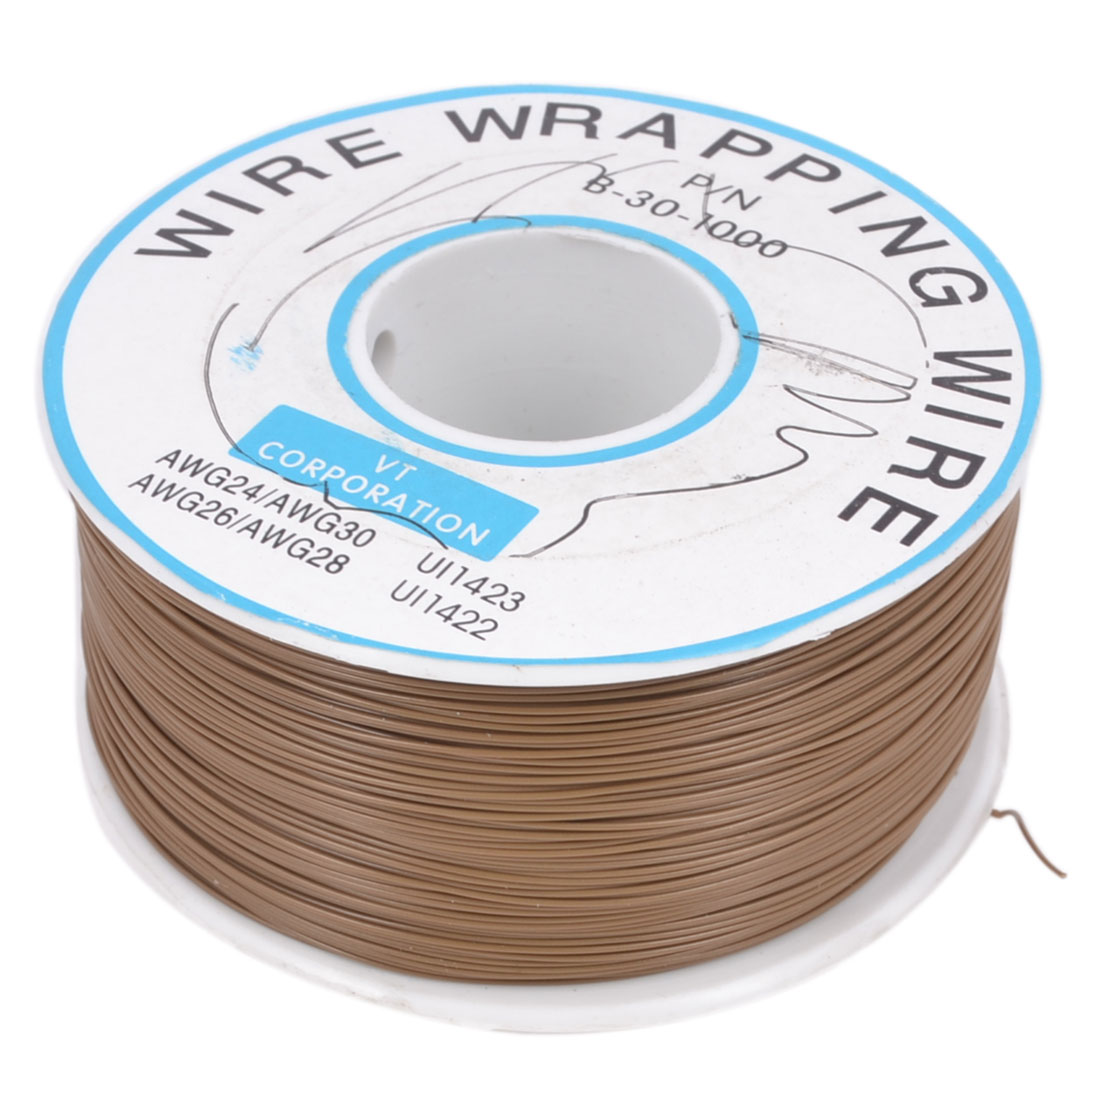 305M P/N B-30-1000 30AWG PCB Solder Brown 0.25mm Dia PVC Coated Tin Plated Copper Wire Wire-Wrapping Flexible Cable Roll